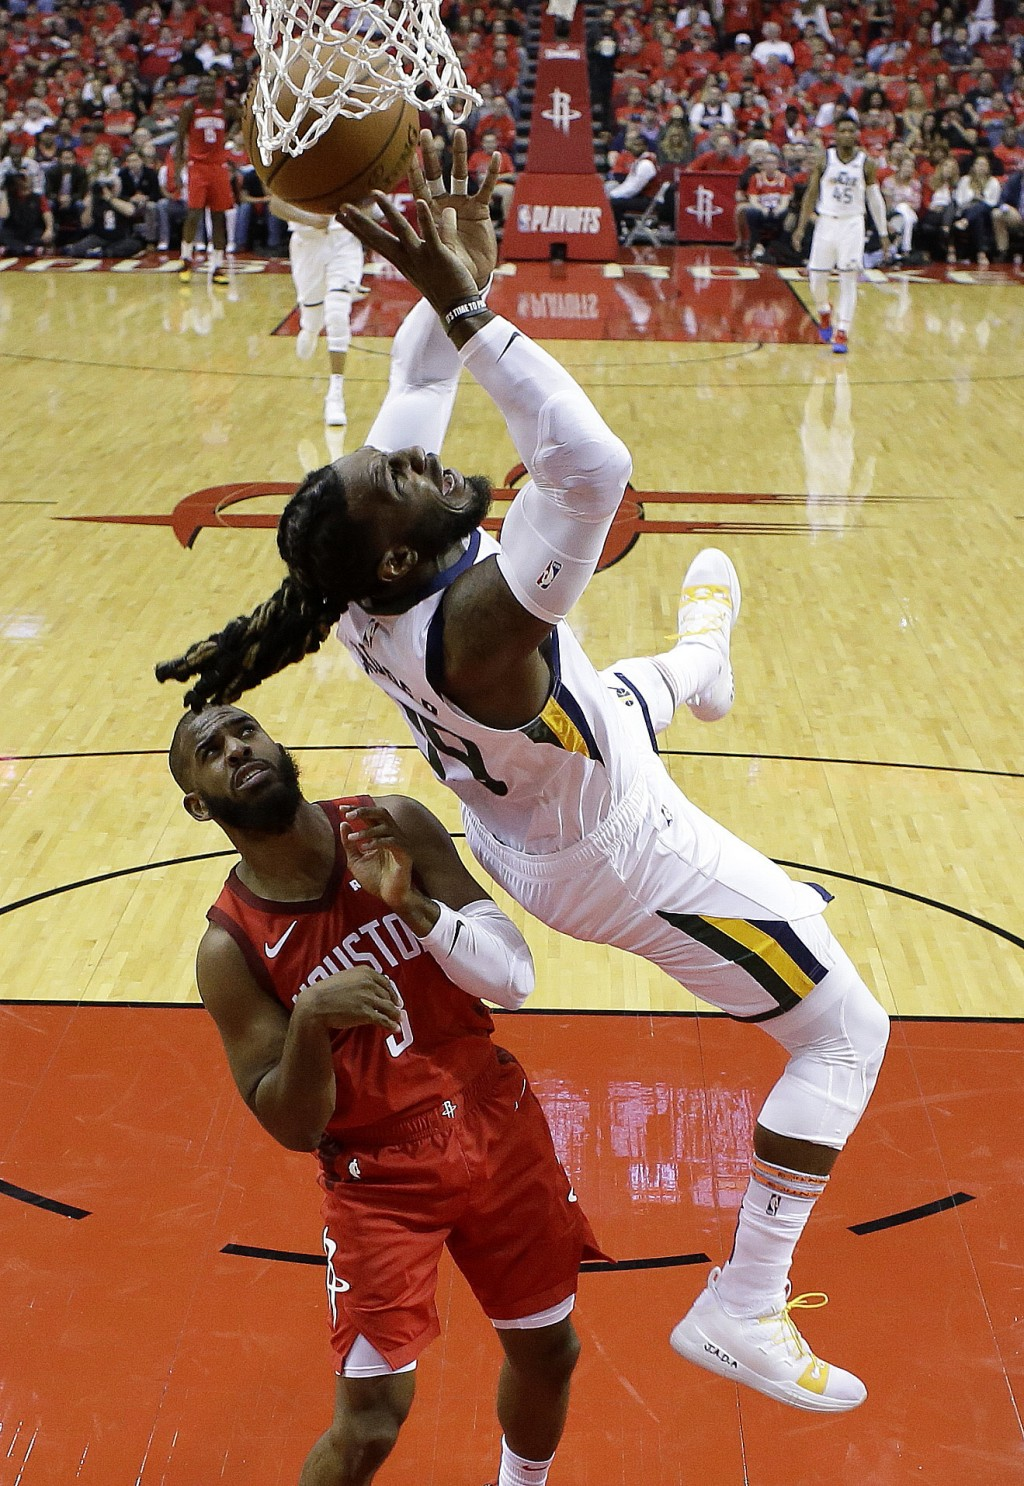 Utah Jazz forward Jae Crowder, right, falls over Houston Rockets guard Chris Paul while driving to the basket during the first half of Game 1 of an NB